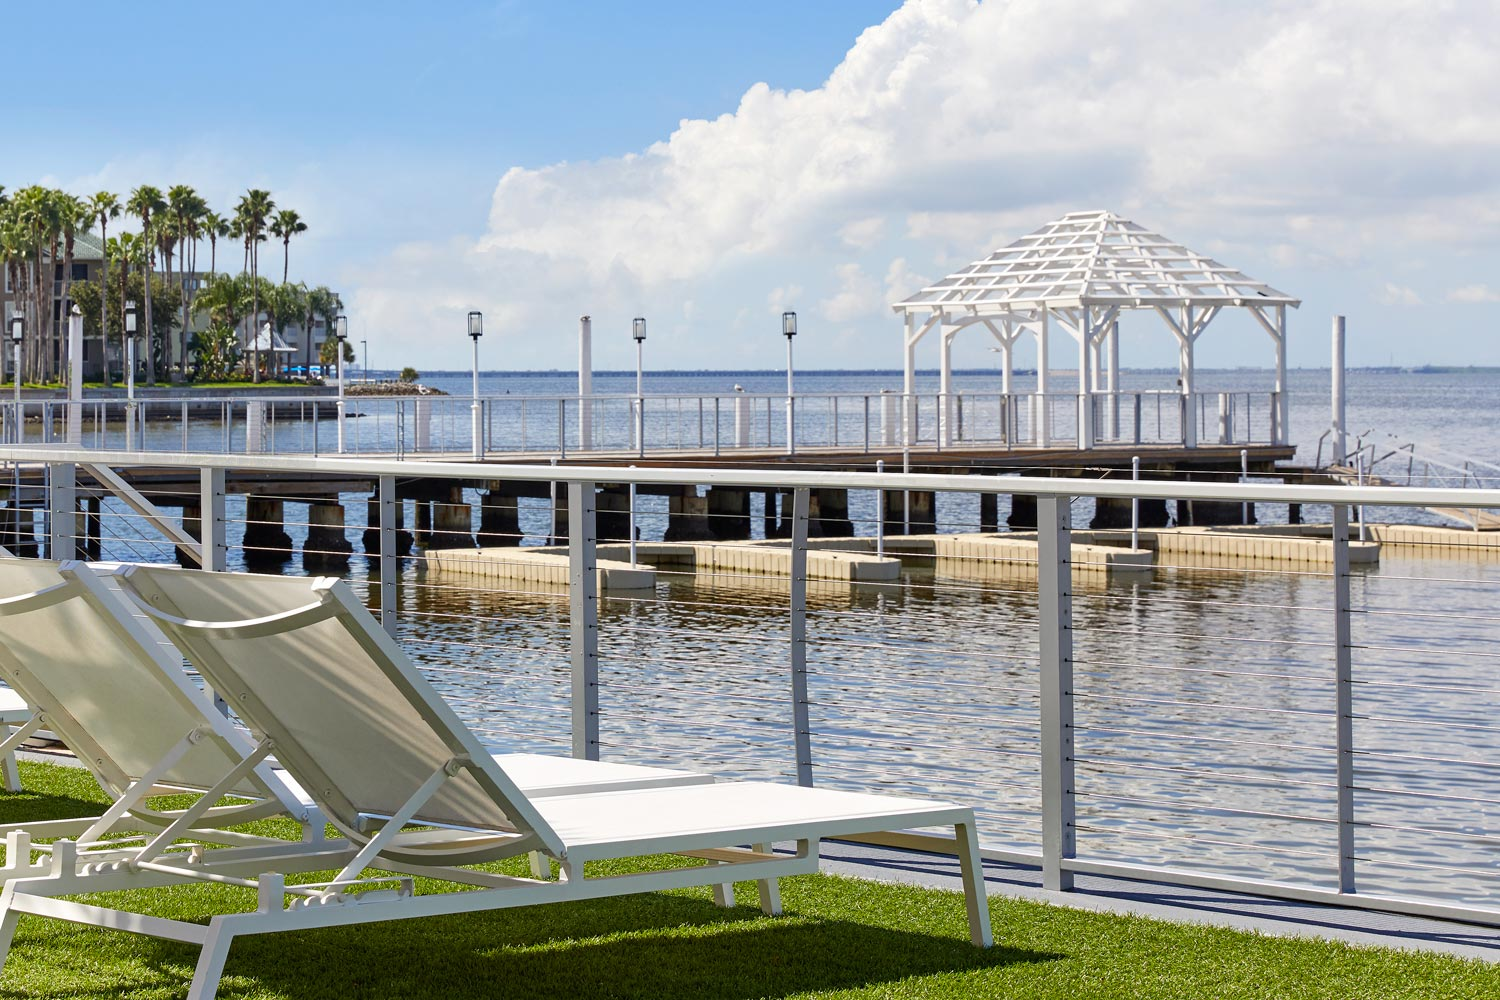 godfrey tampa lounge chairs by the bay